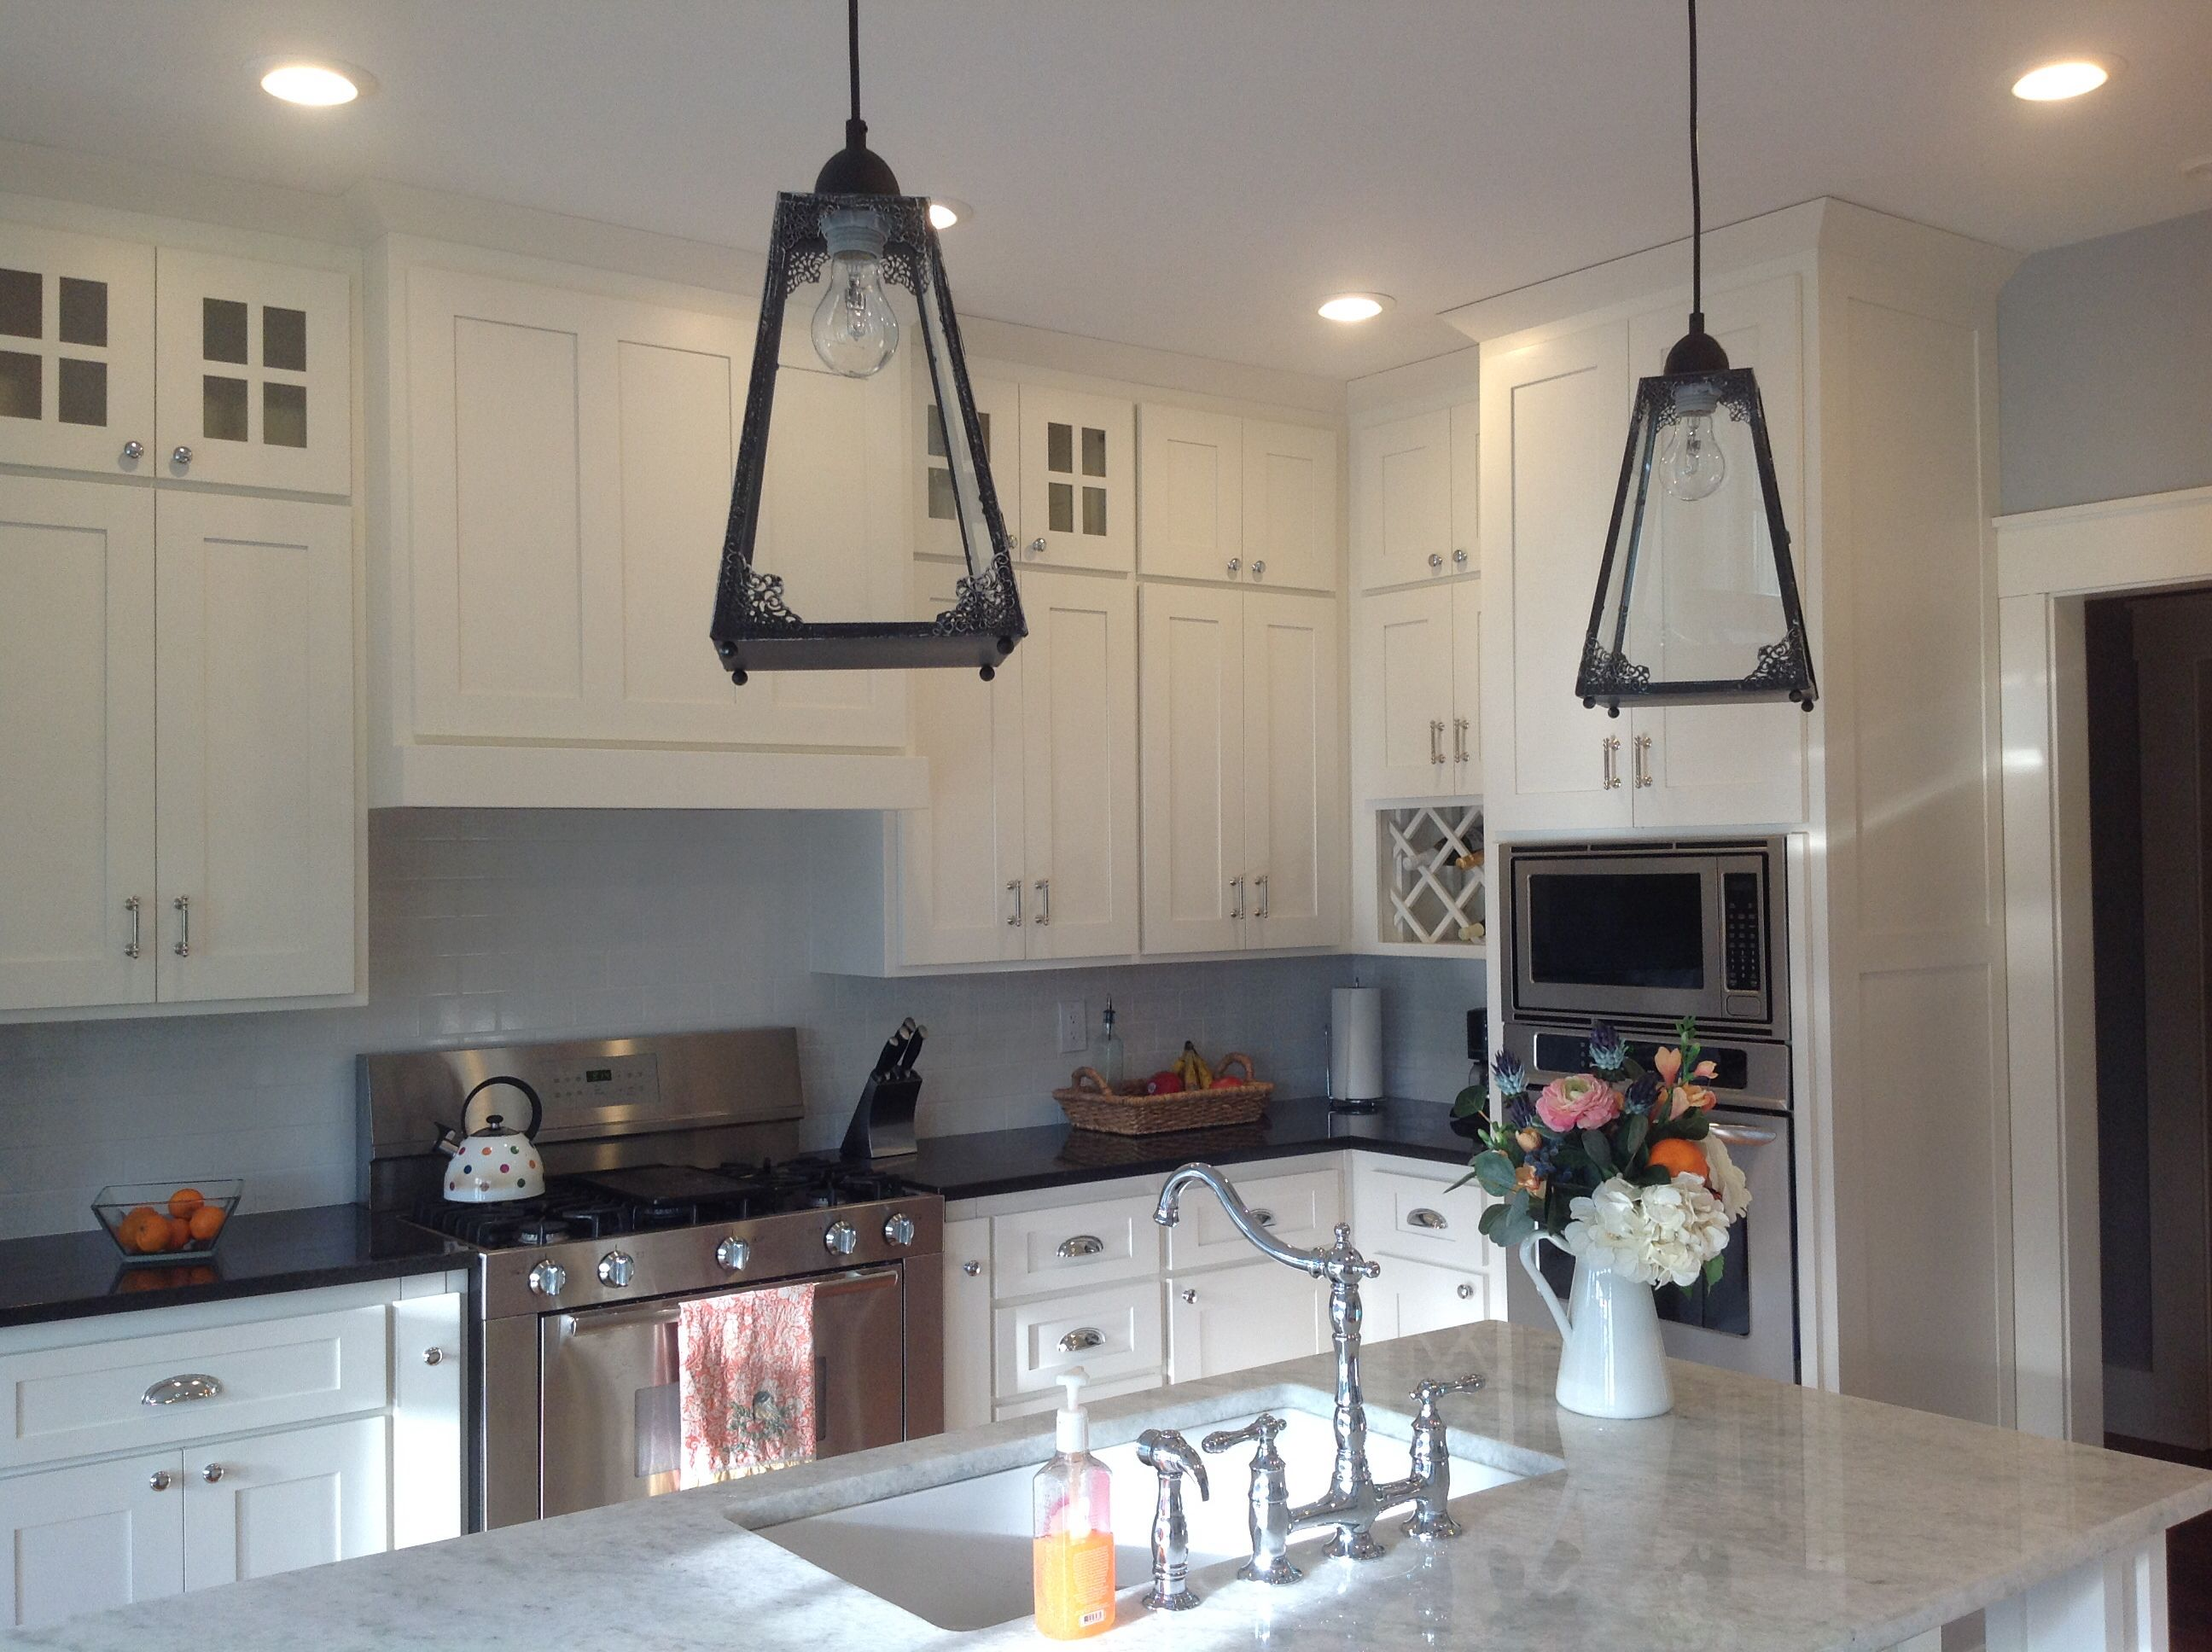 Hobby Lobby Lanterns Turned Into Pendant Light Fixtures